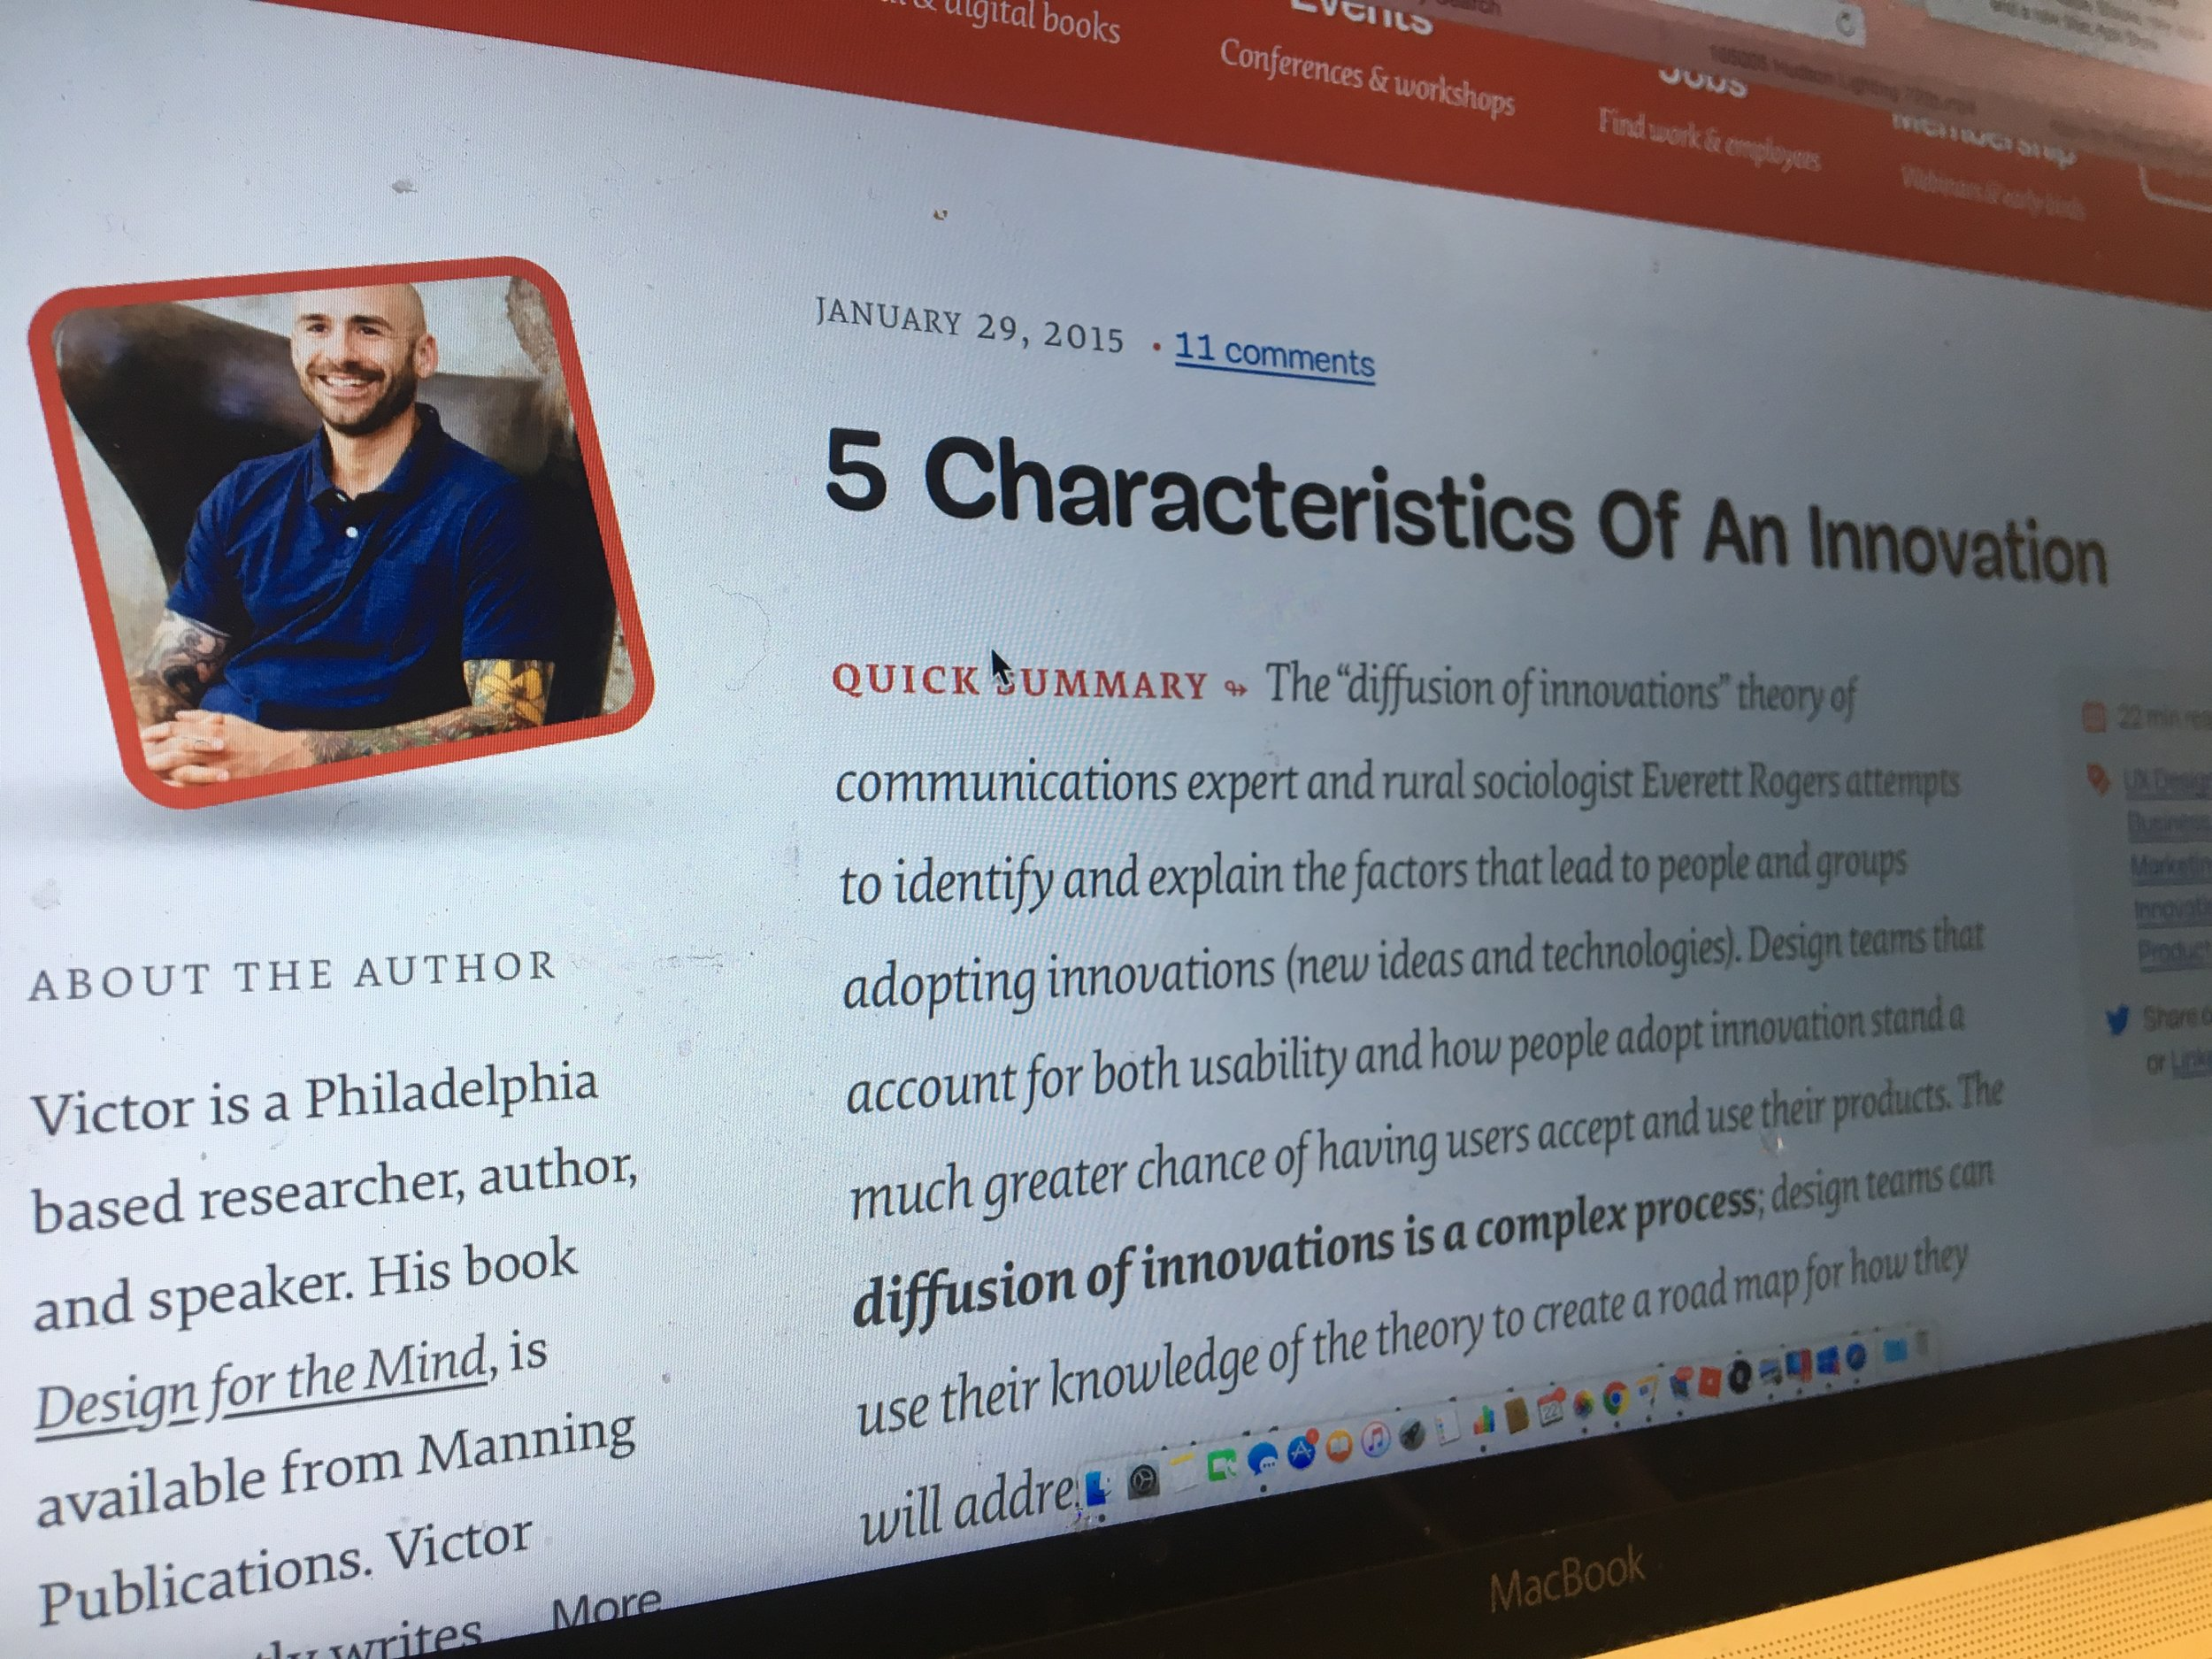 - In stumbling around the inter-webs looking for something entirely unrelated (yes, we were actually googling diffusion) we stumbled across this beaut of an article. For those of you who know us well here at Hudson Spider, we are passionate about making cool shit that solves problems, we are innovators, not business people. In fact, our company manual is a children's book series (not even joking, more on that below).